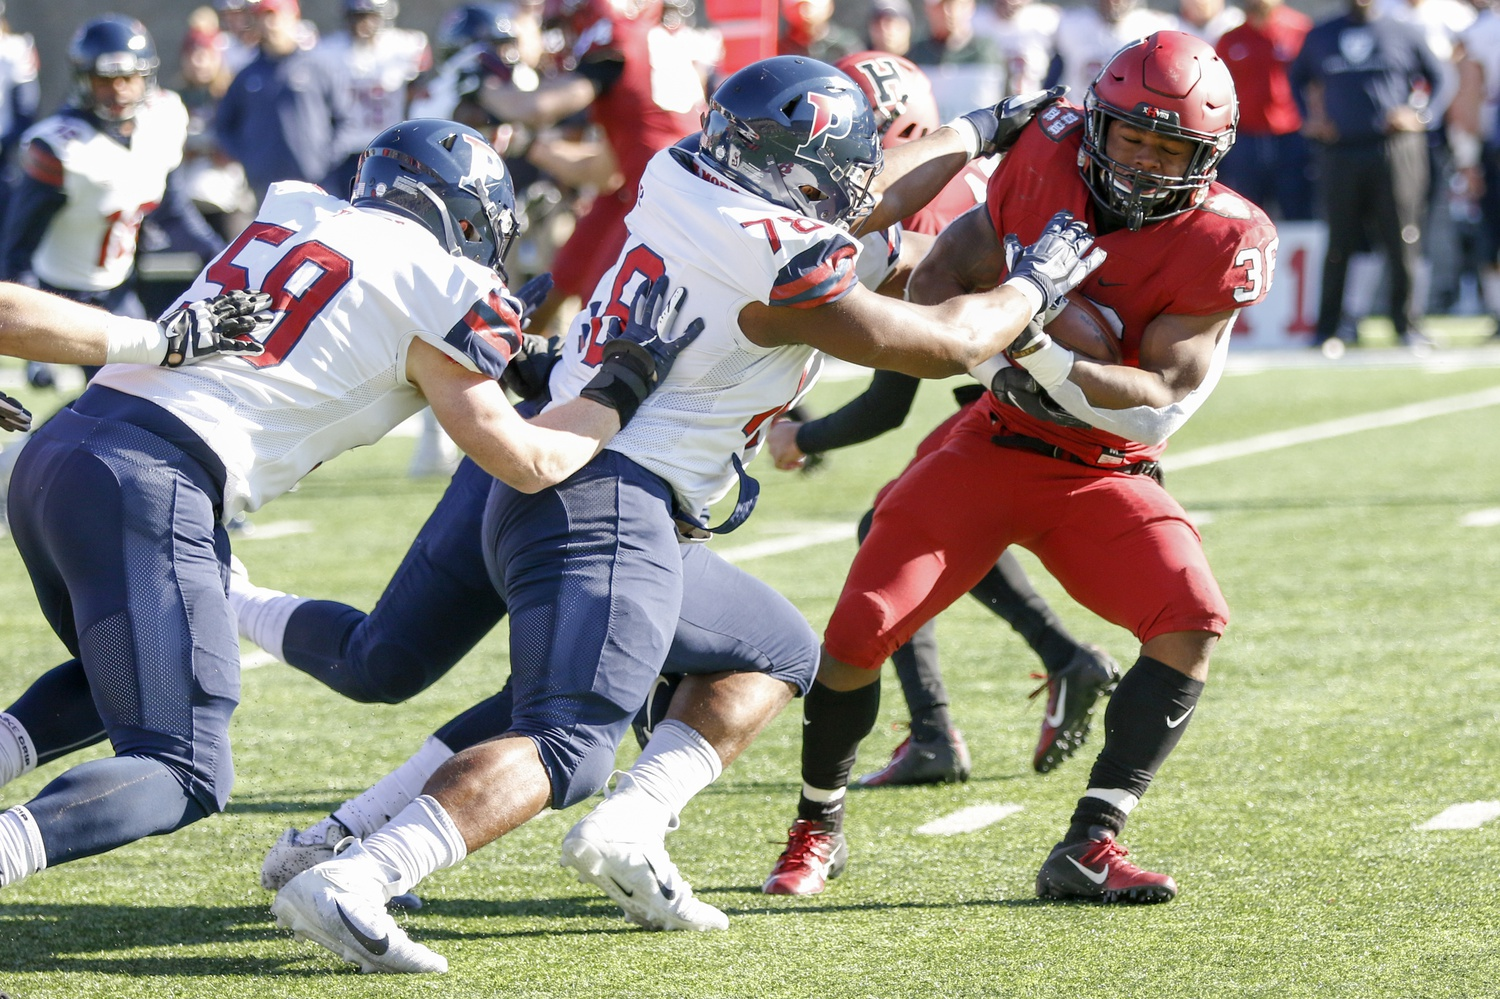 Running back Devin Darrington is swallowed up at the line of scrimmage on Saturday afternoon. The Crimson net only 62 rushing yards on the afternoon.